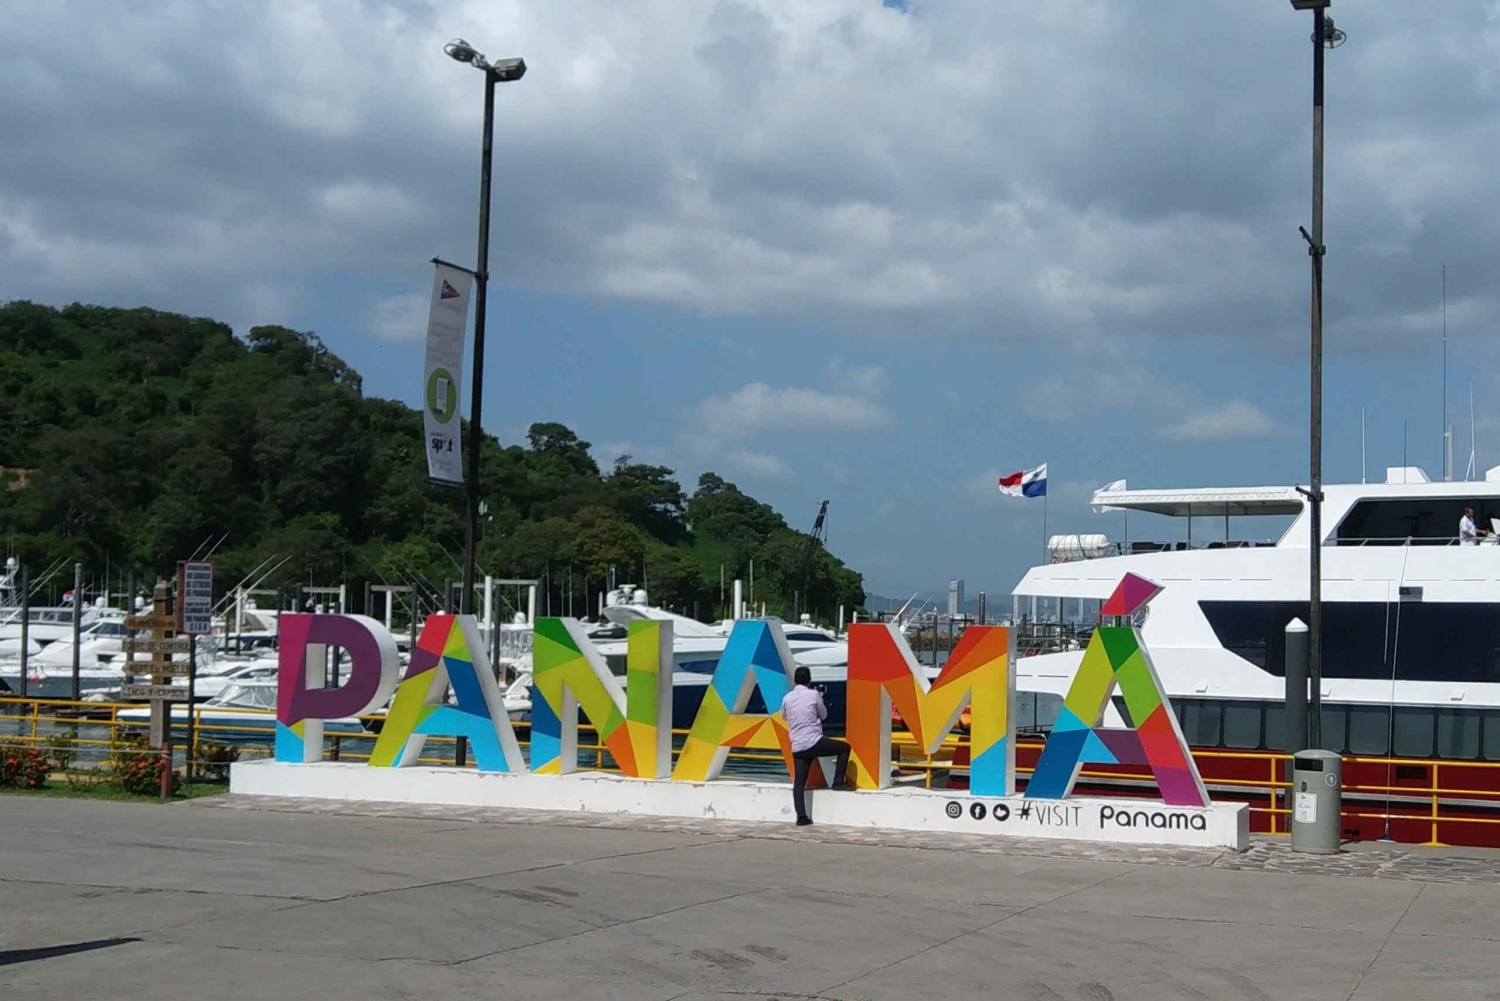 Panama City Layover Tour